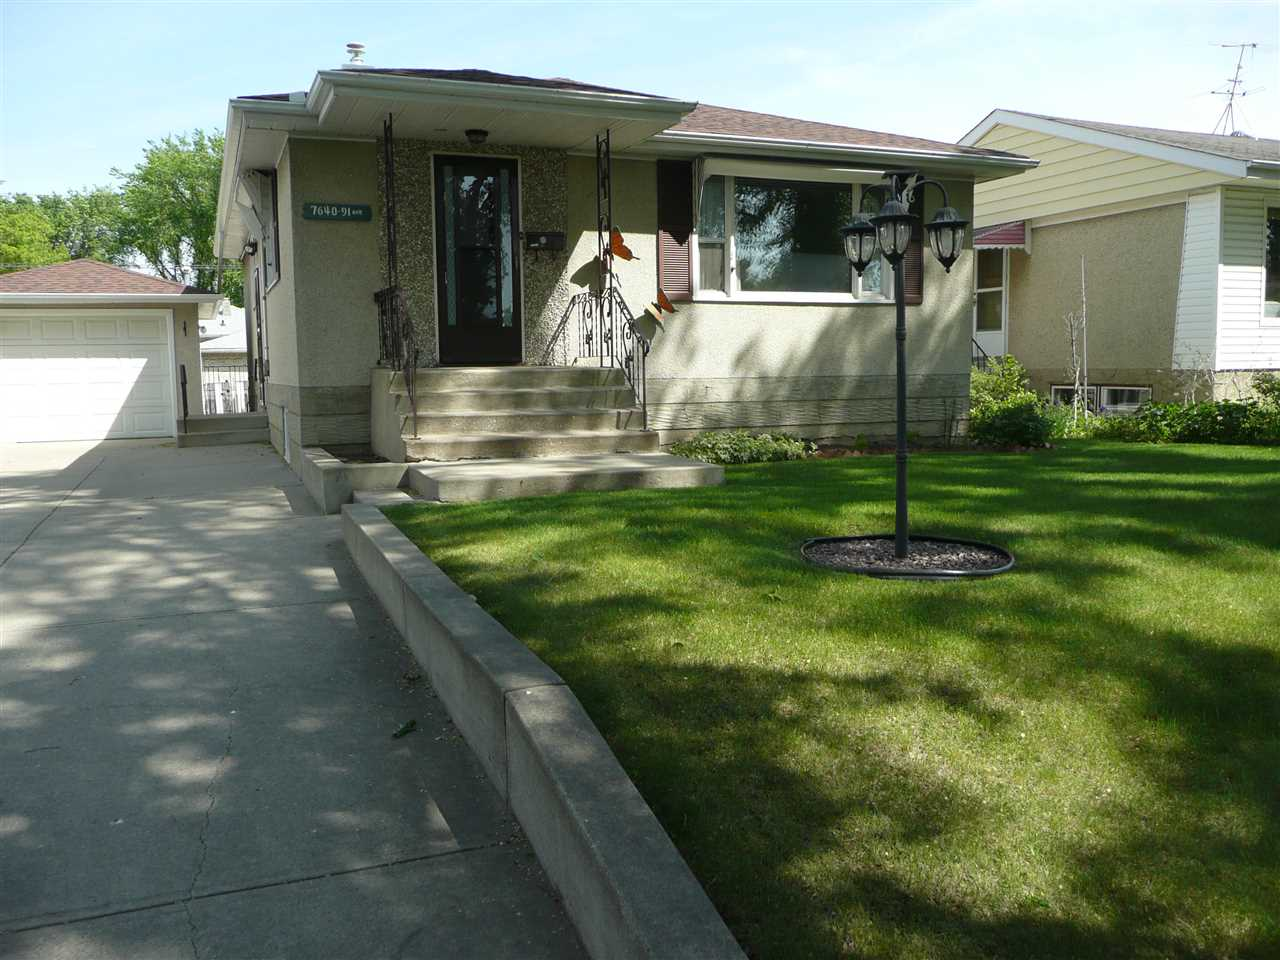 Main Photo: 7640 91 Avenue in Edmonton: Zone 18 House for sale : MLS® # E4070144